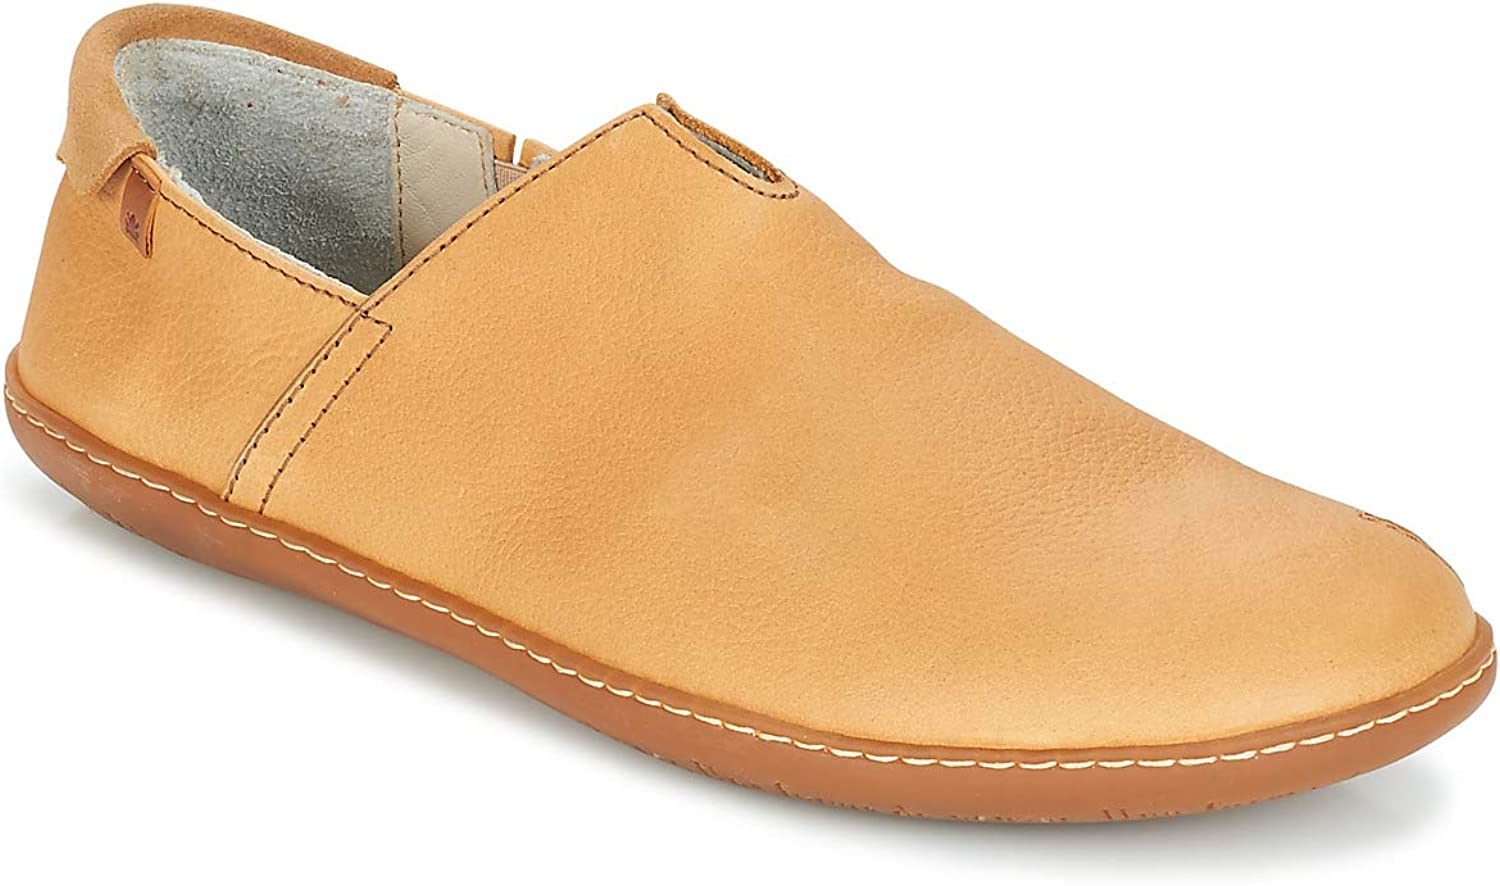 El Naturalista N275 Soft Grain Curry EL Viajero Orange Femme Chaussures élastique